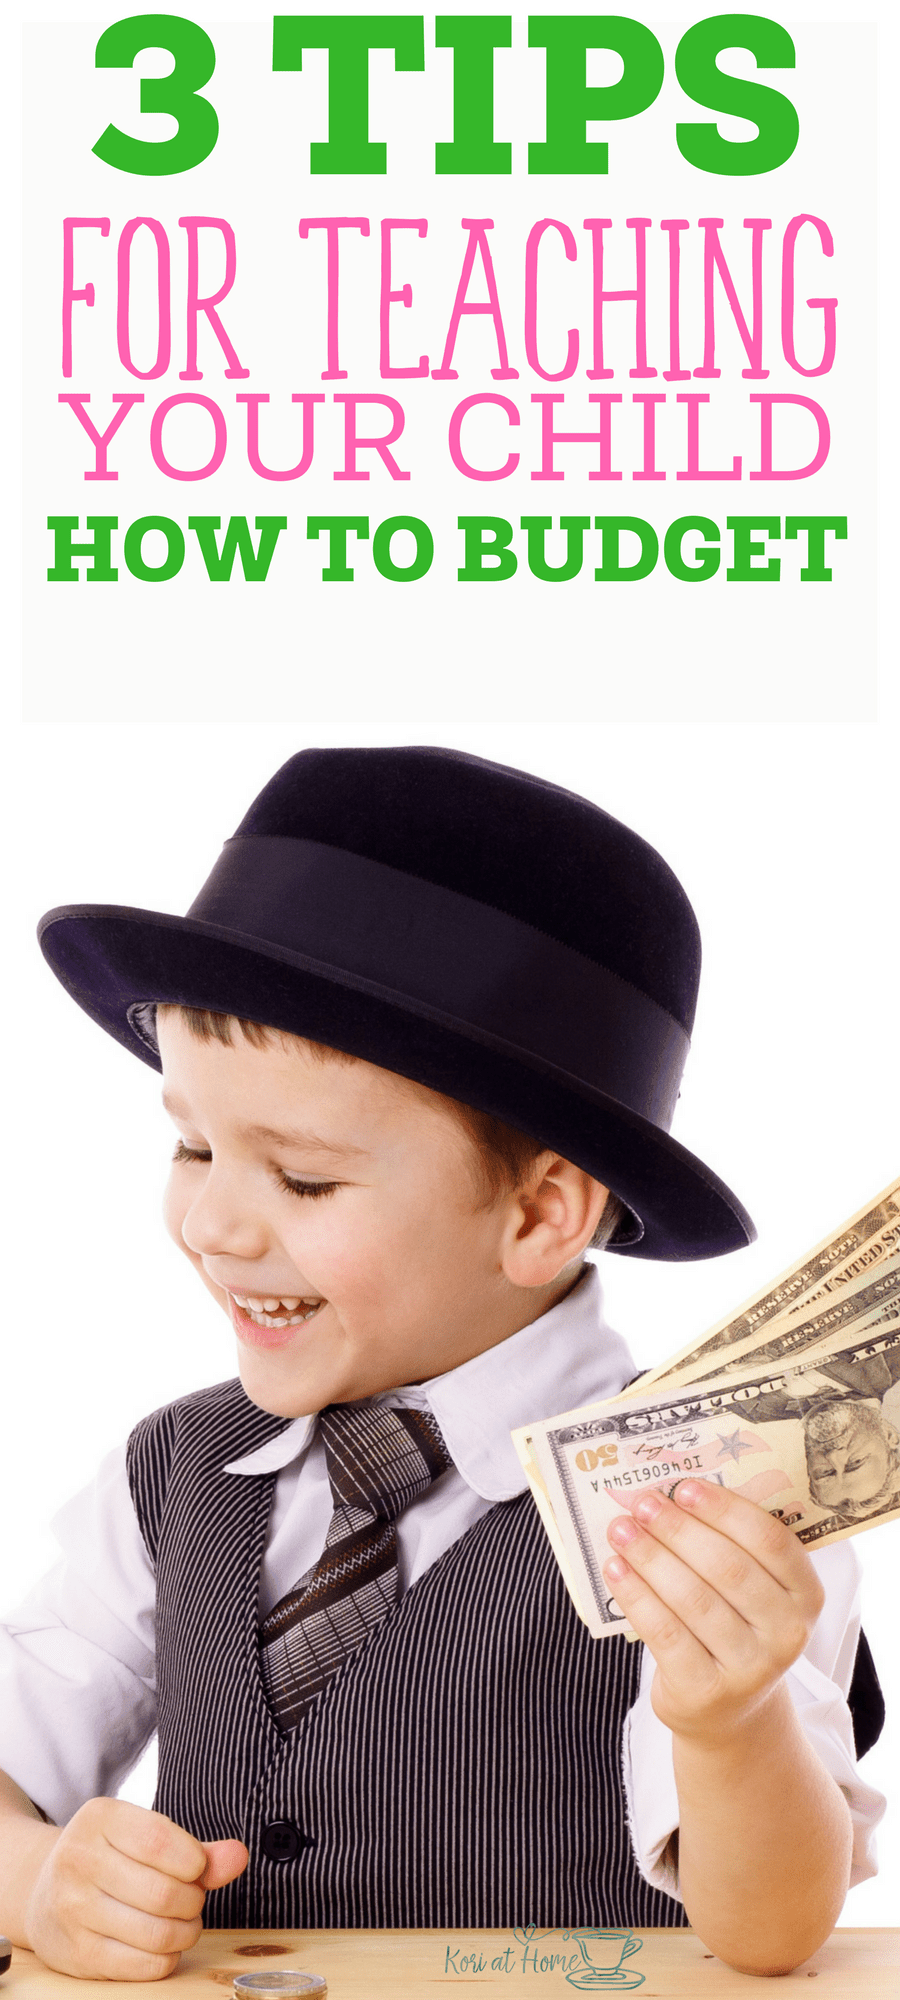 Budgeting is a skill. Here are a few tips for how to teach your child to budget.